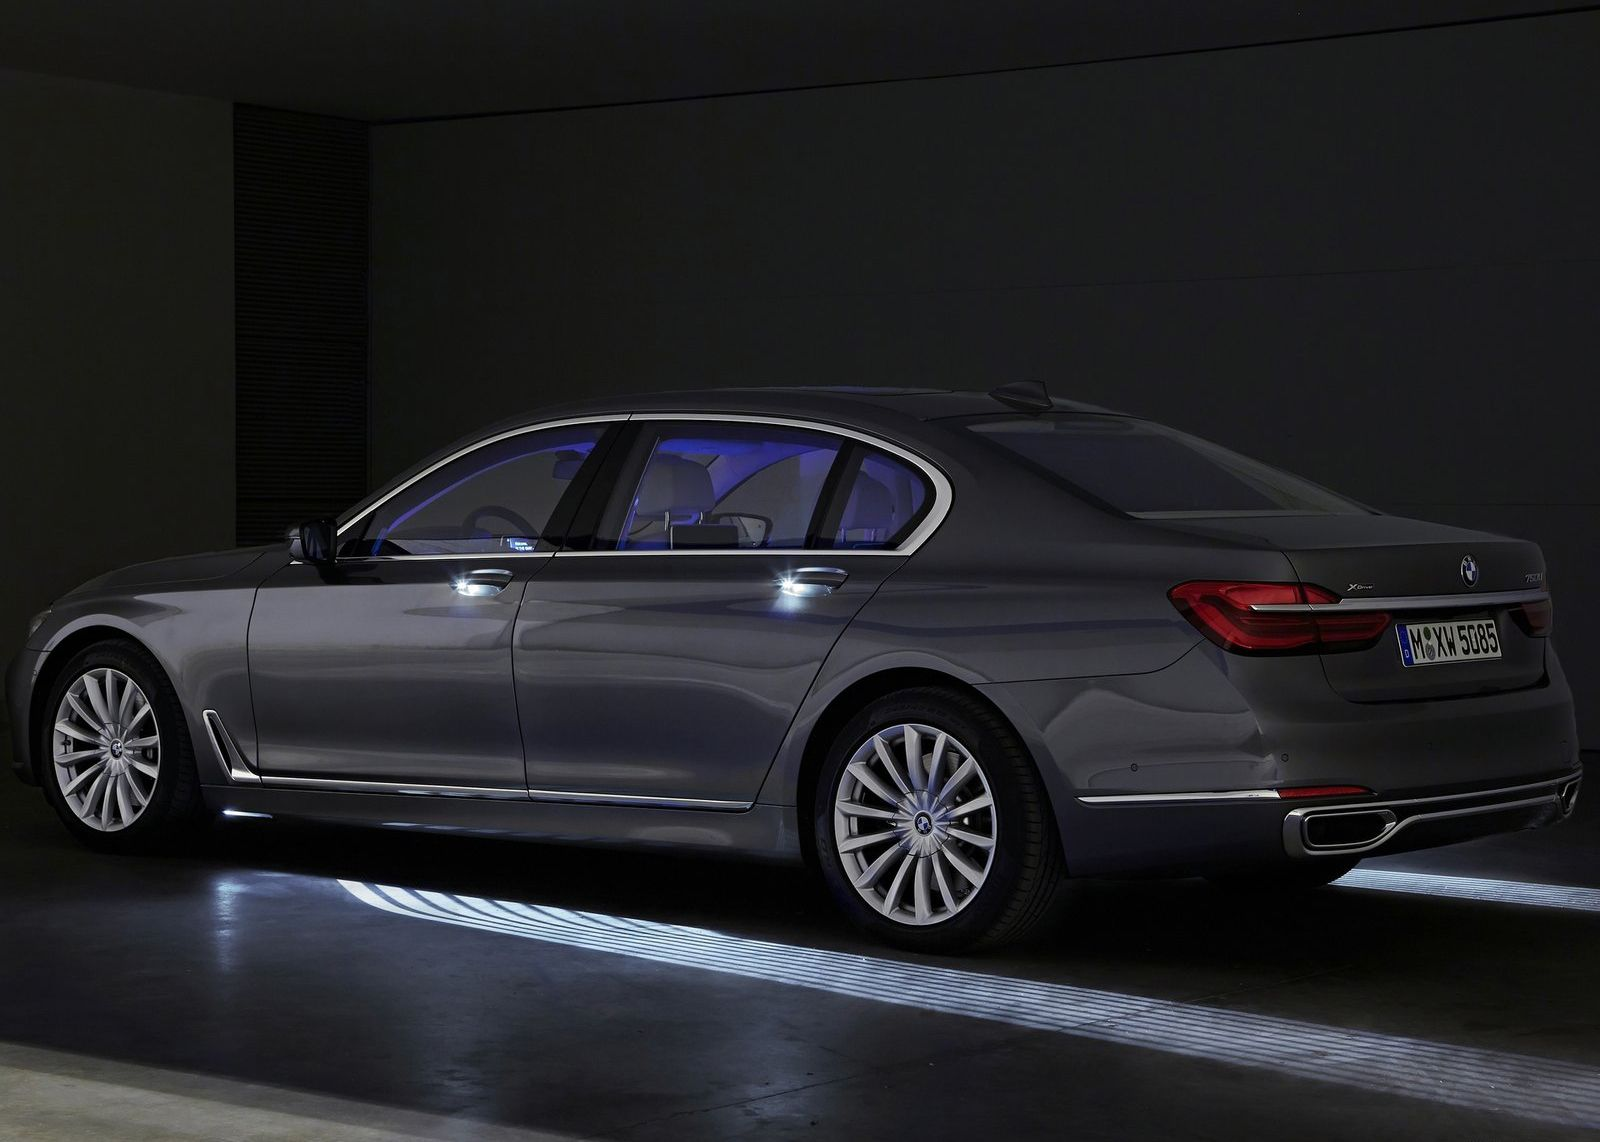 Bmw 7 Series 2016 Welcome Light Carpet It Took 3 Years To Get This Into Production C Www Bmwgroup Com Bmw 7series Exteriorl Bmw Bmw 7 Series Luxury Cars